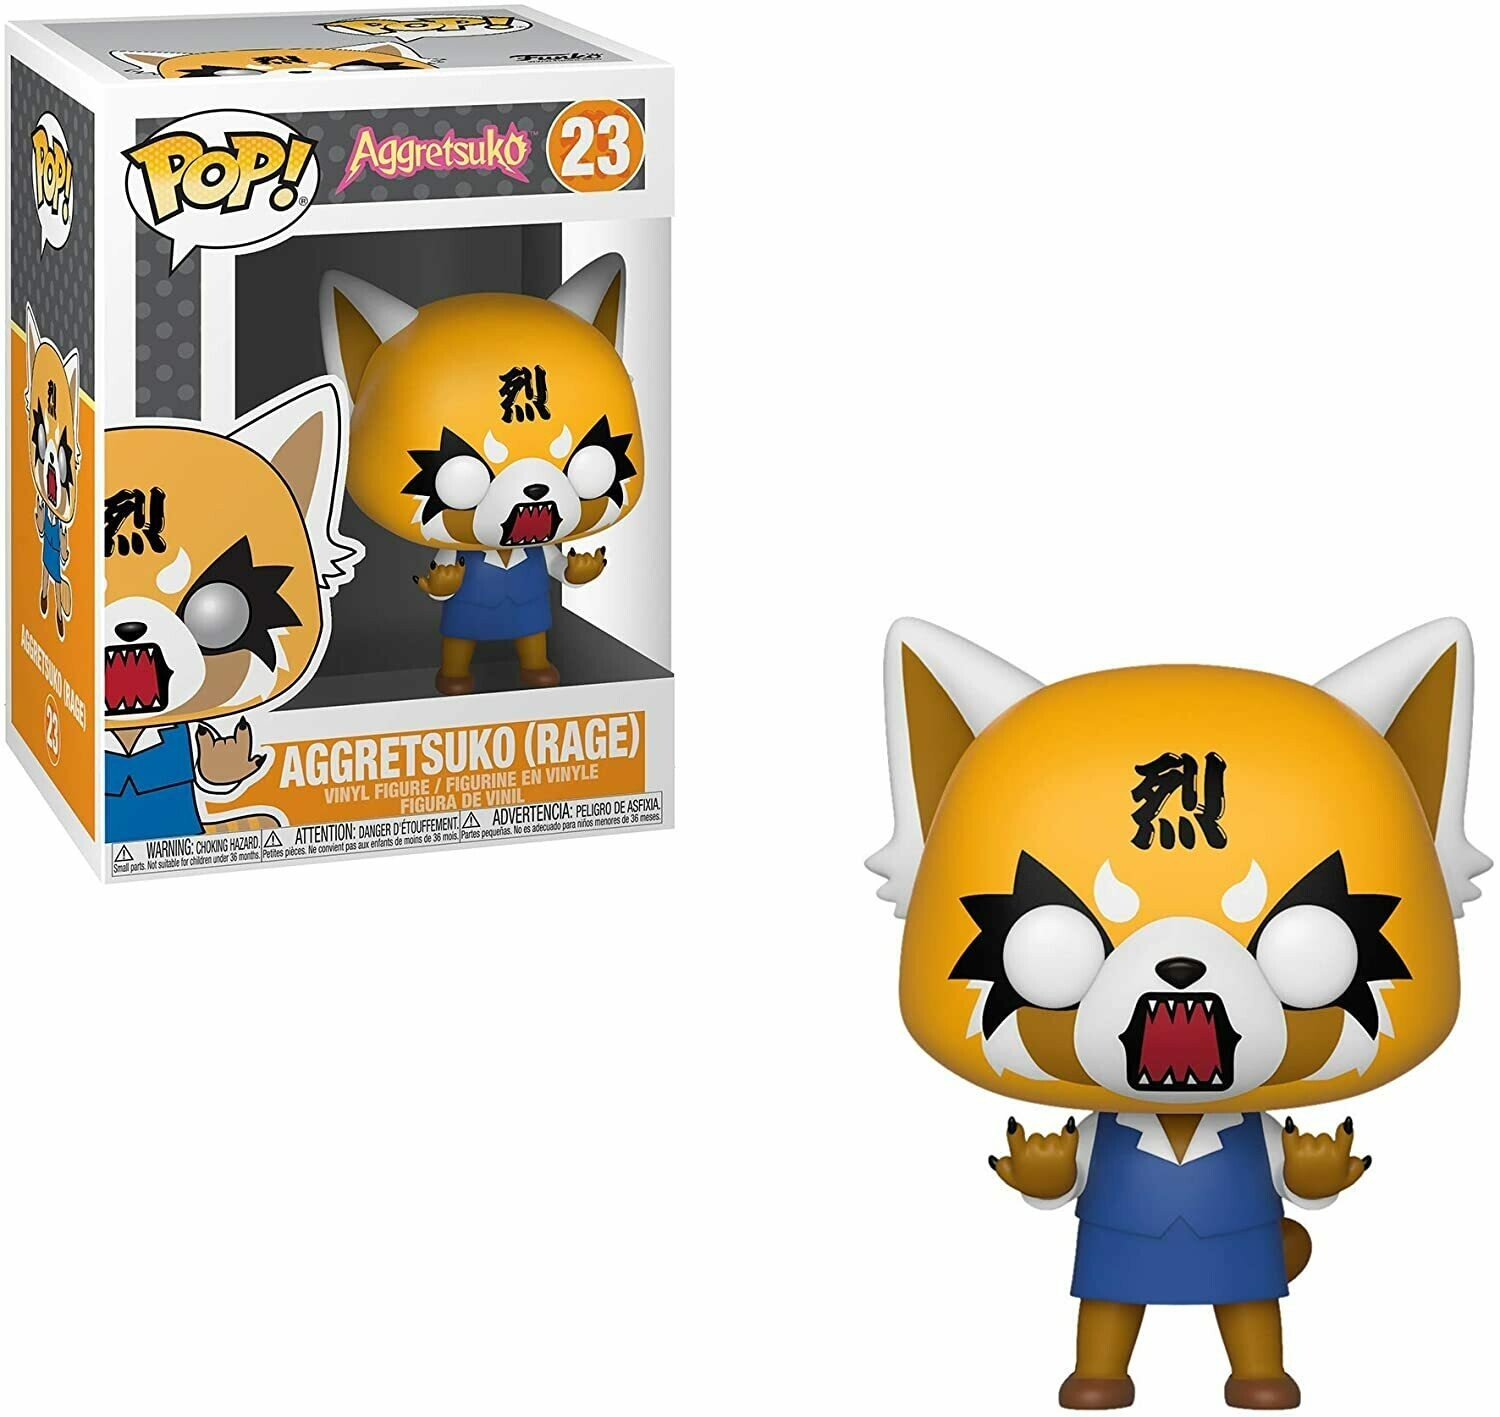 Funko Pop! Aggretsuko Rage